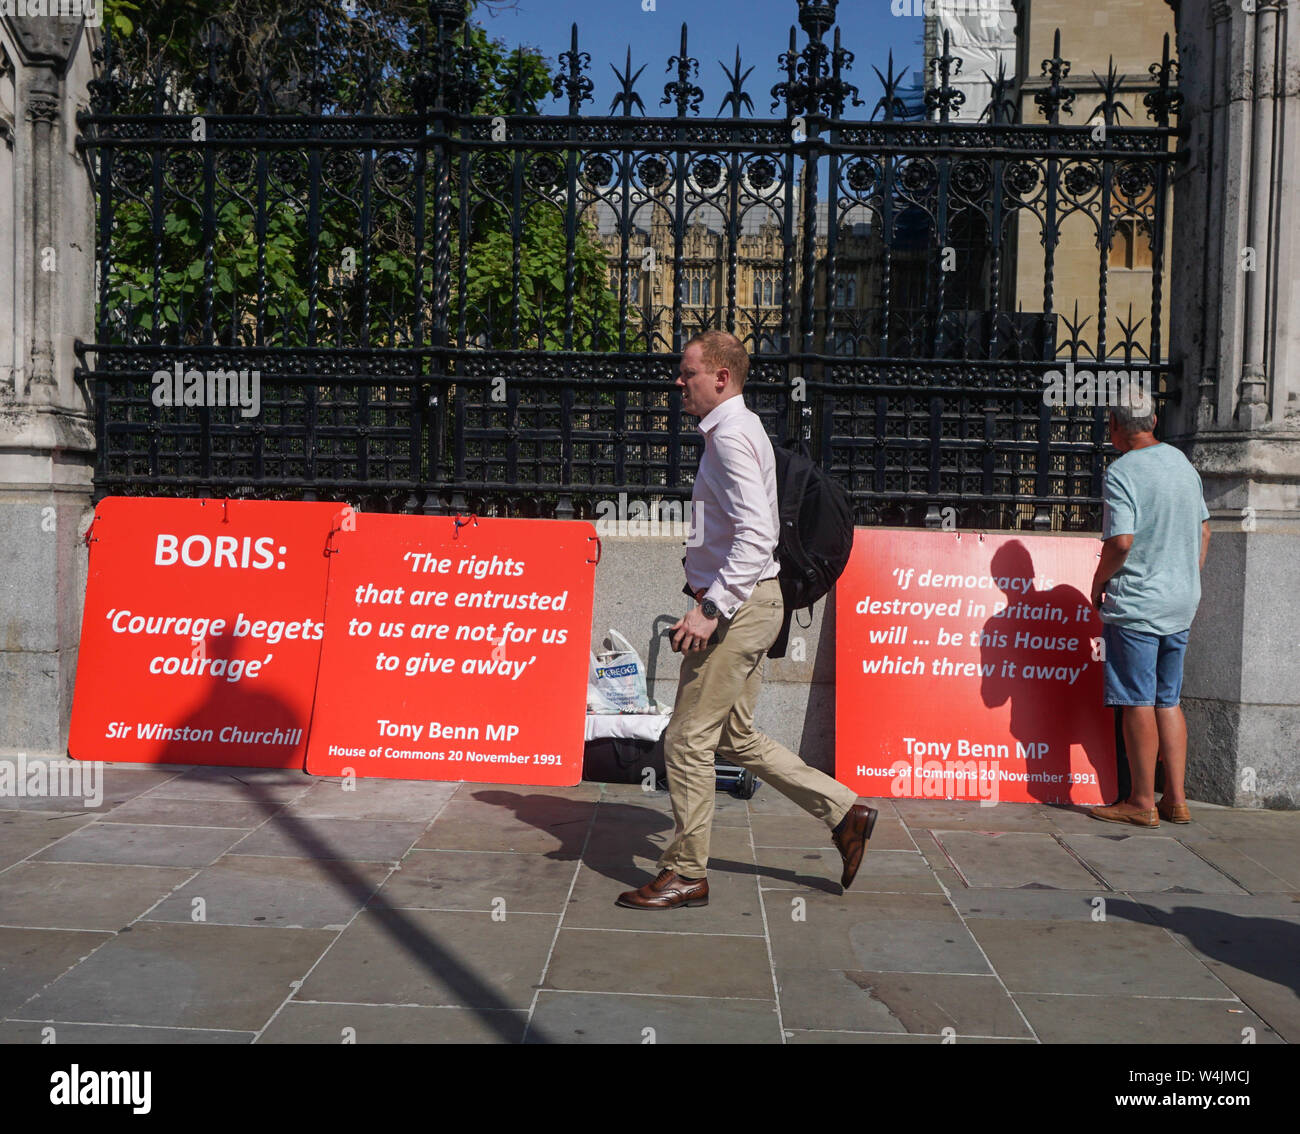 London, UK. 23rd July, 2019. A man walks past placards outside the Houses of Parliament. Credit: Yiannis Alexopoulos/SOPA Images/ZUMA Wire/Alamy Live News Stock Photo